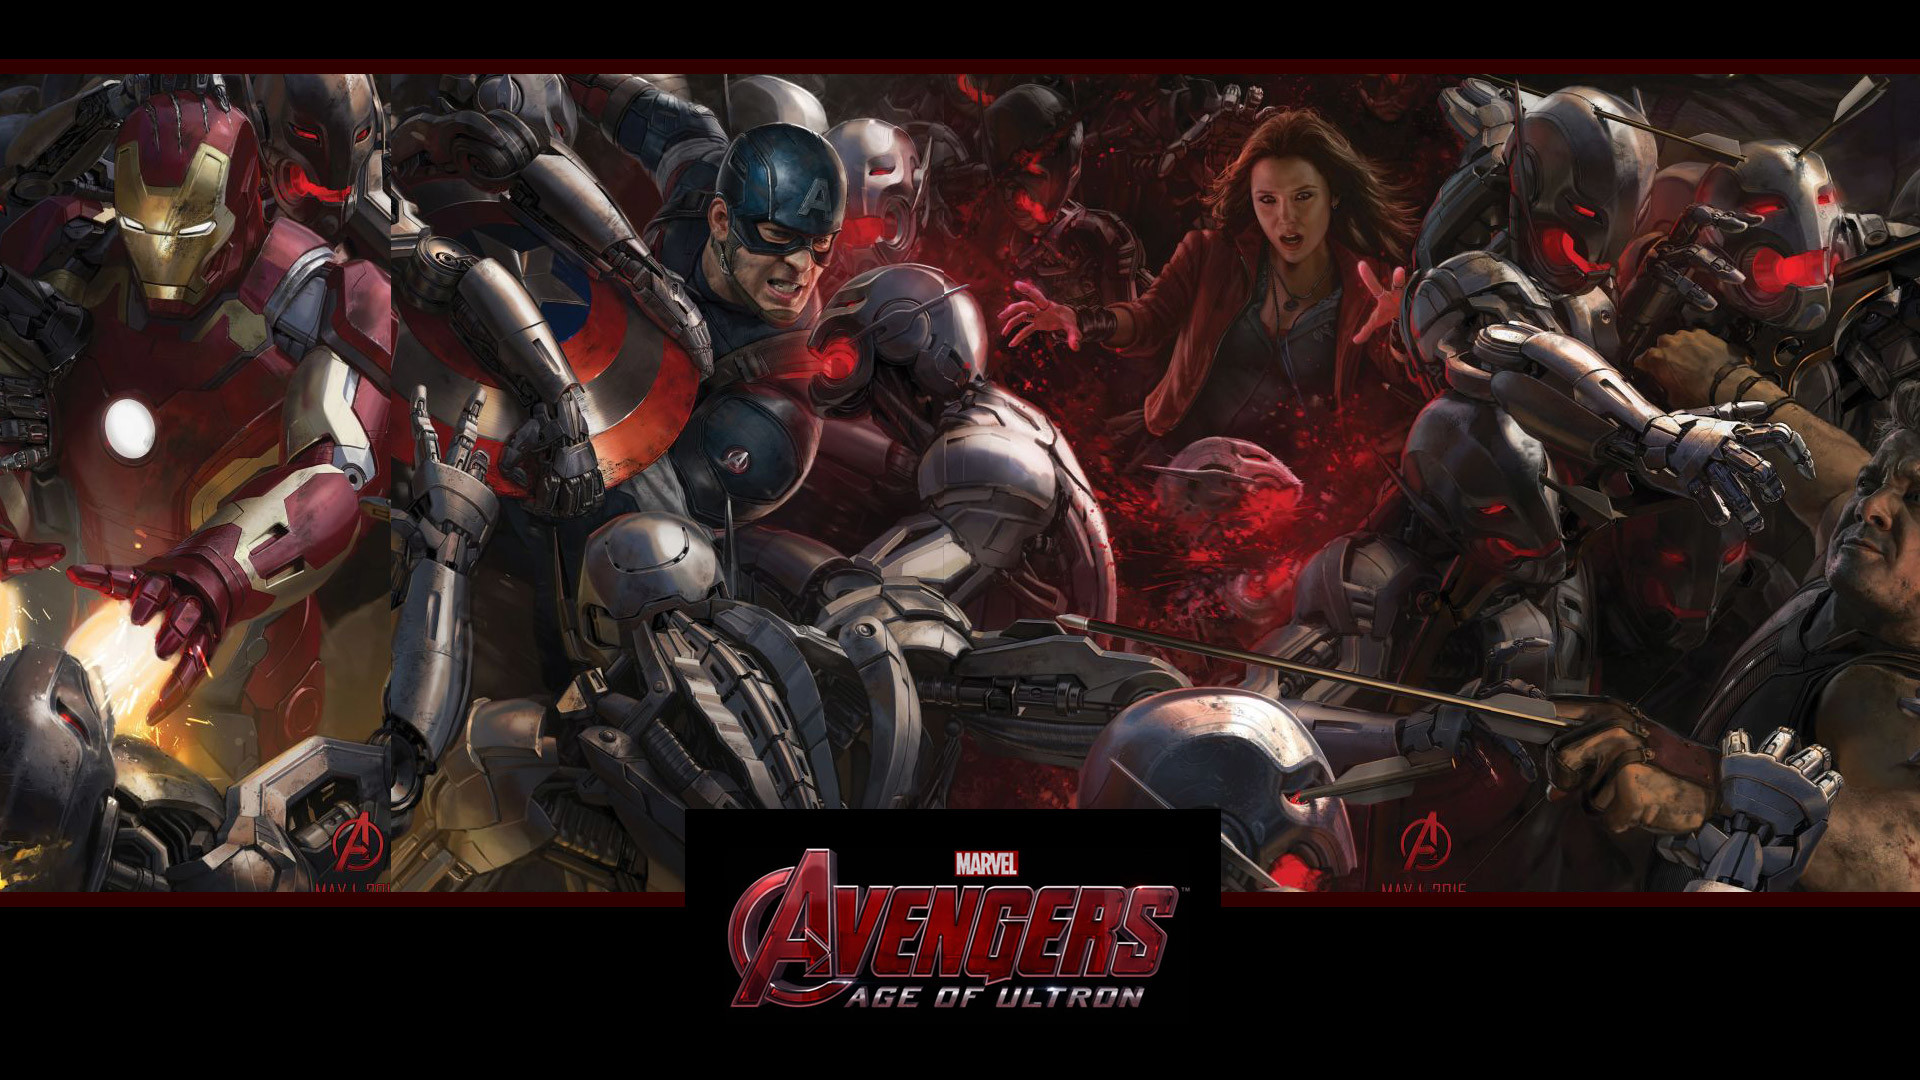 … Avengers 2 Age of Ultron 2015 Desktop amp iPhone Wallpapers HD